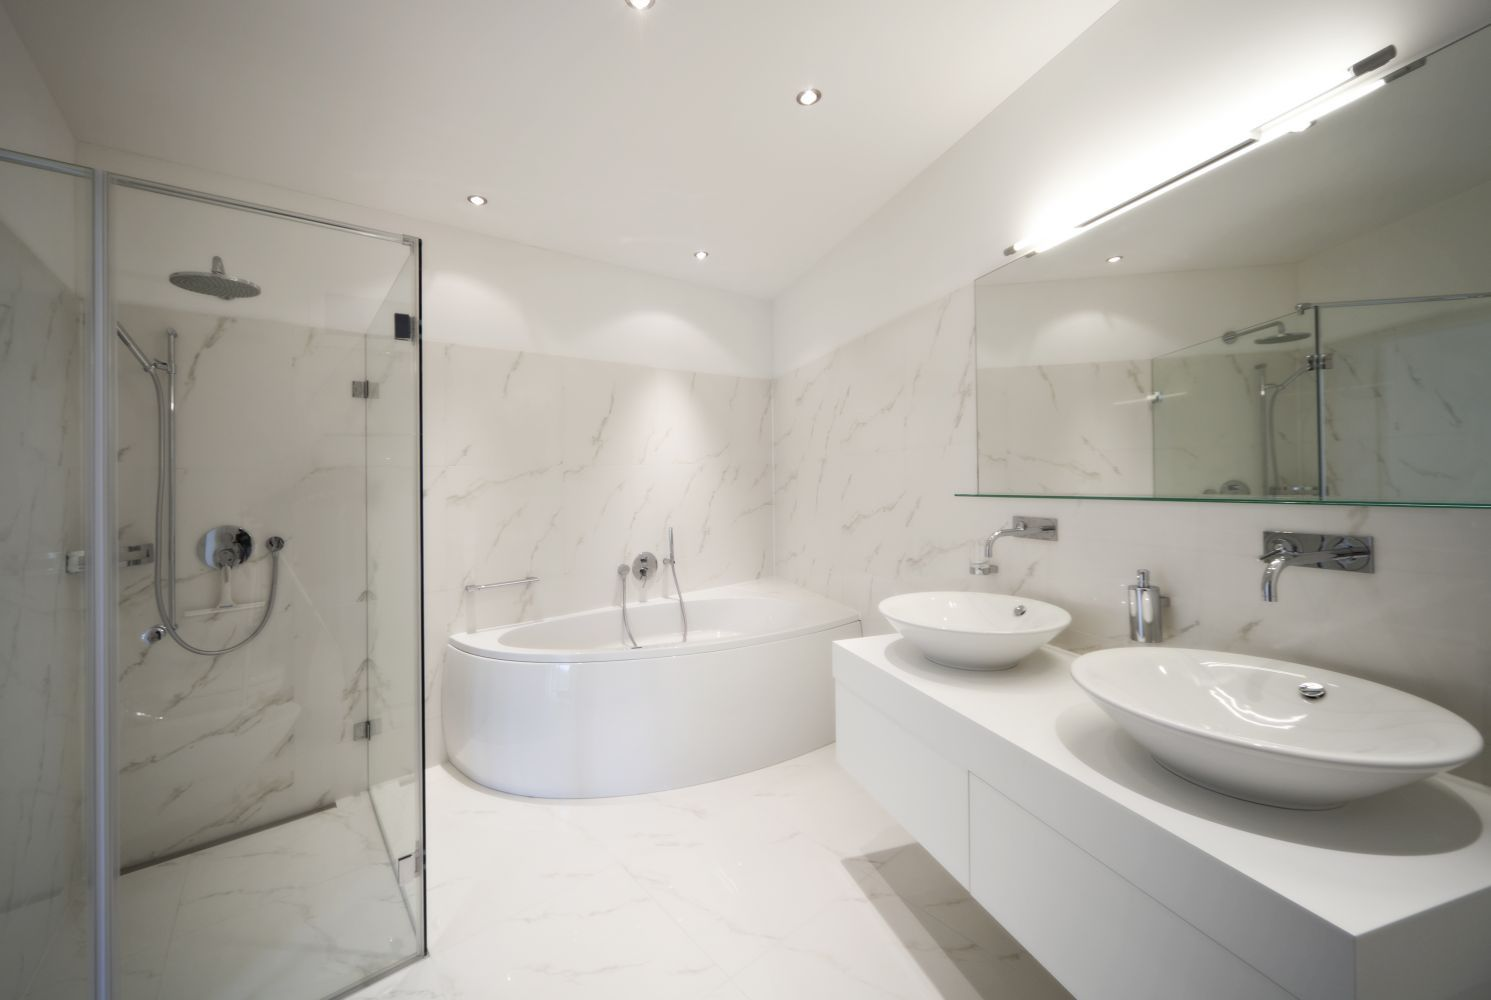 Reliable gas plumbing services in Wellington